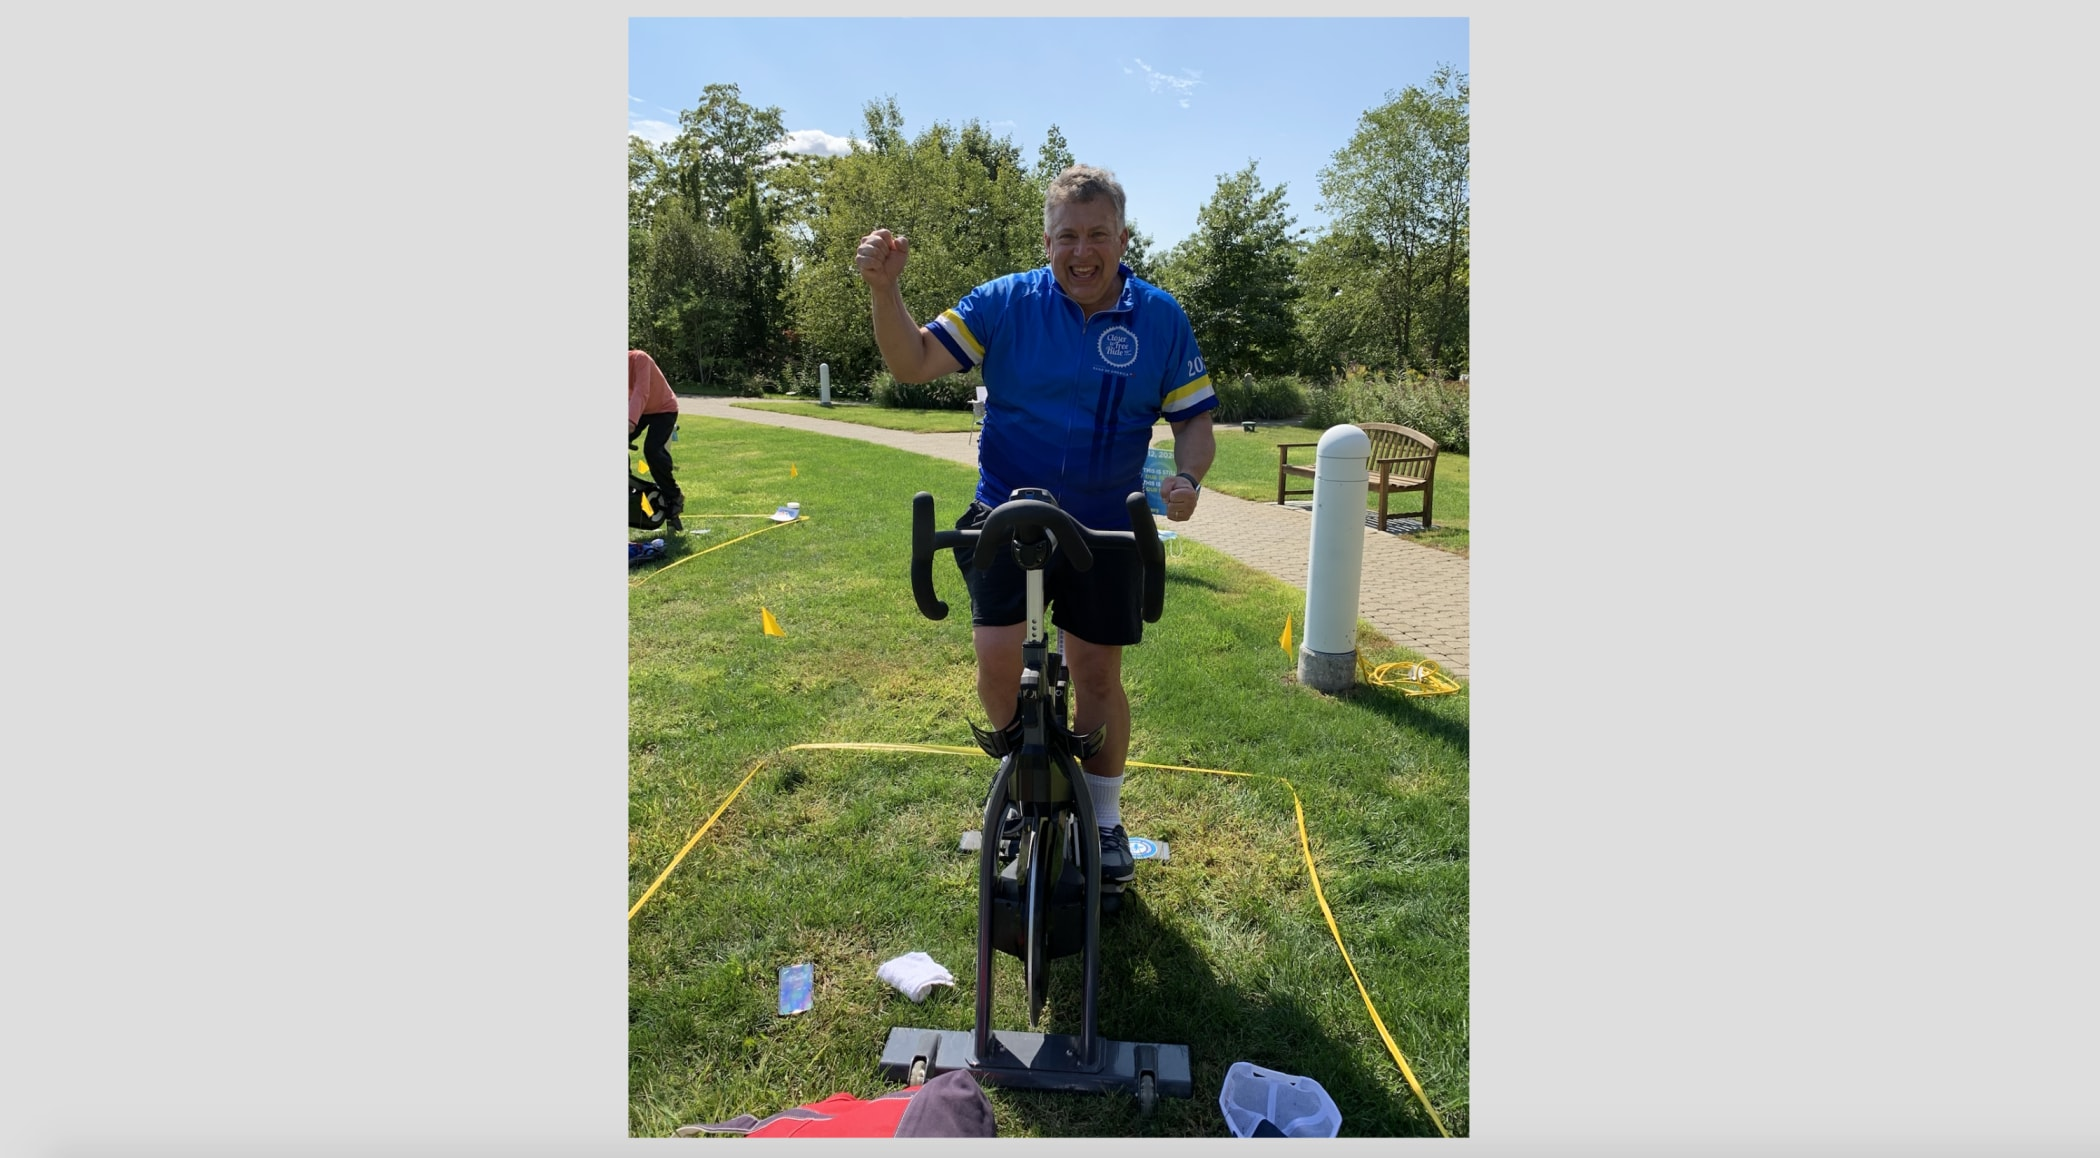 Dr. Roy Herbst joining the group spinning!